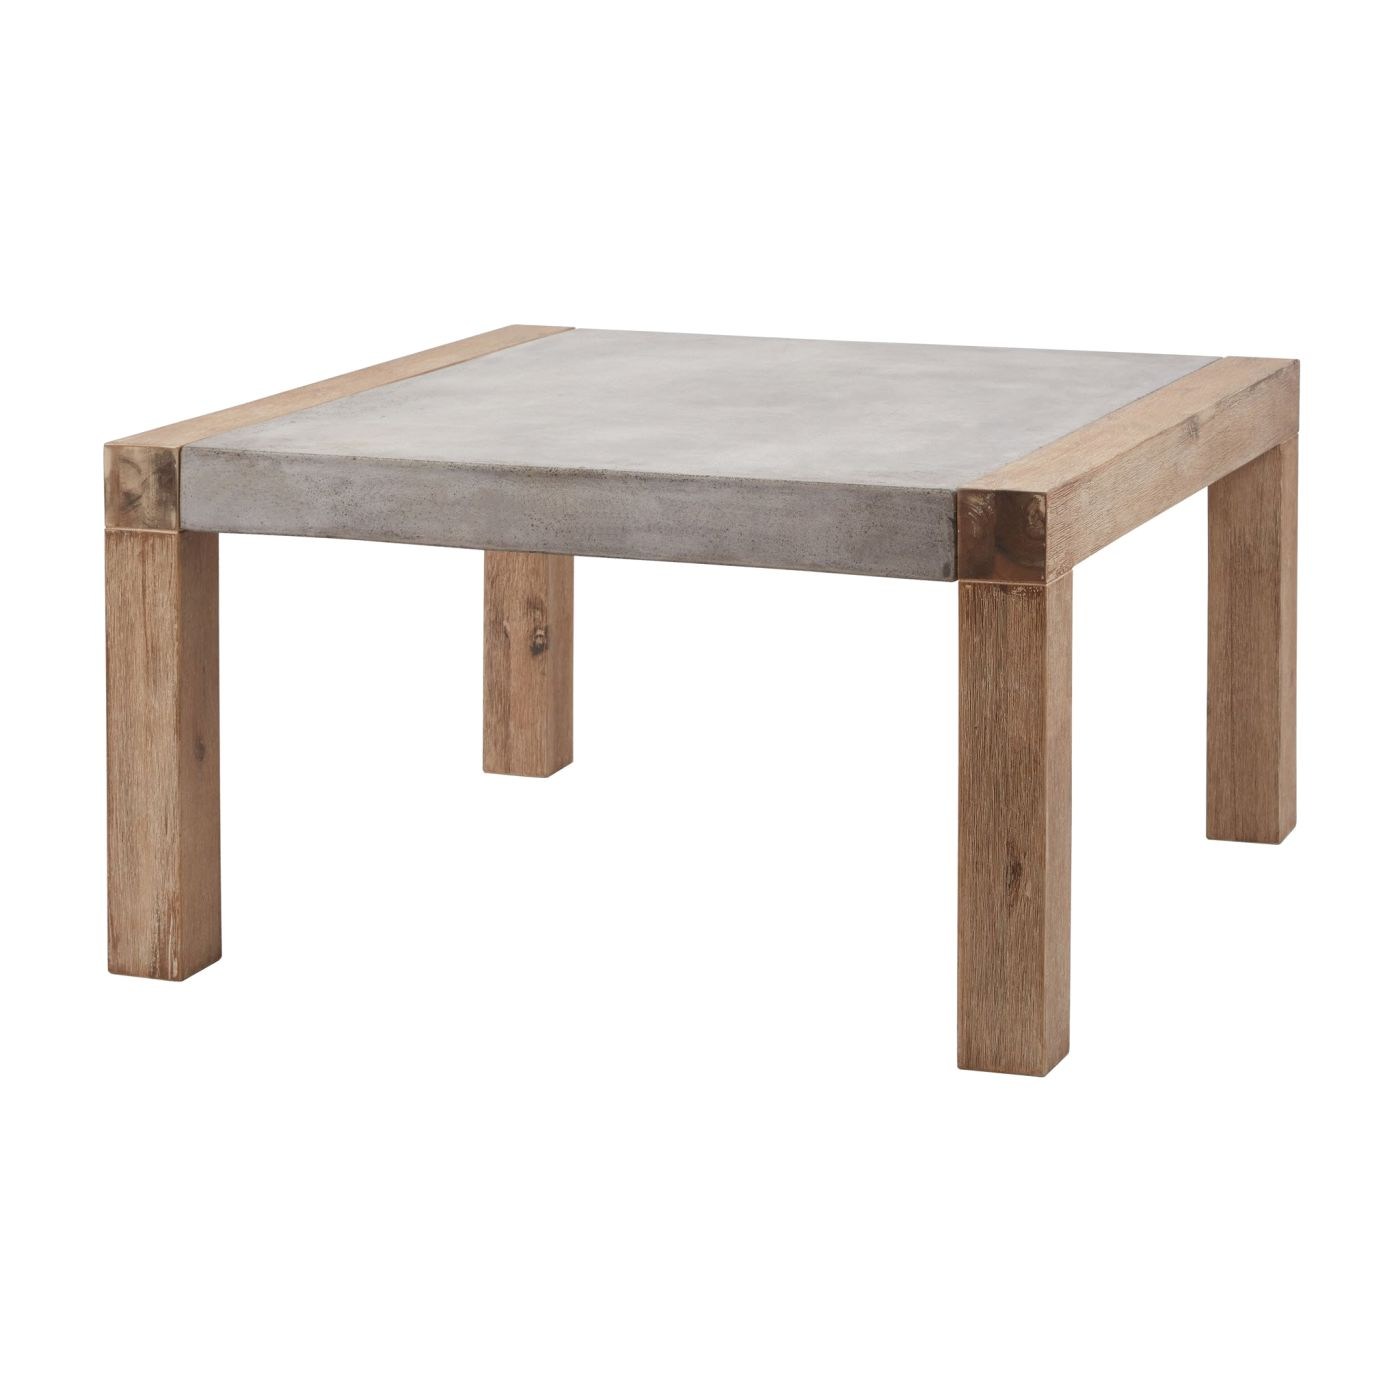 Coffee Table Desk.Arctic Small Square Coffee Table Brushed Concrete Oak